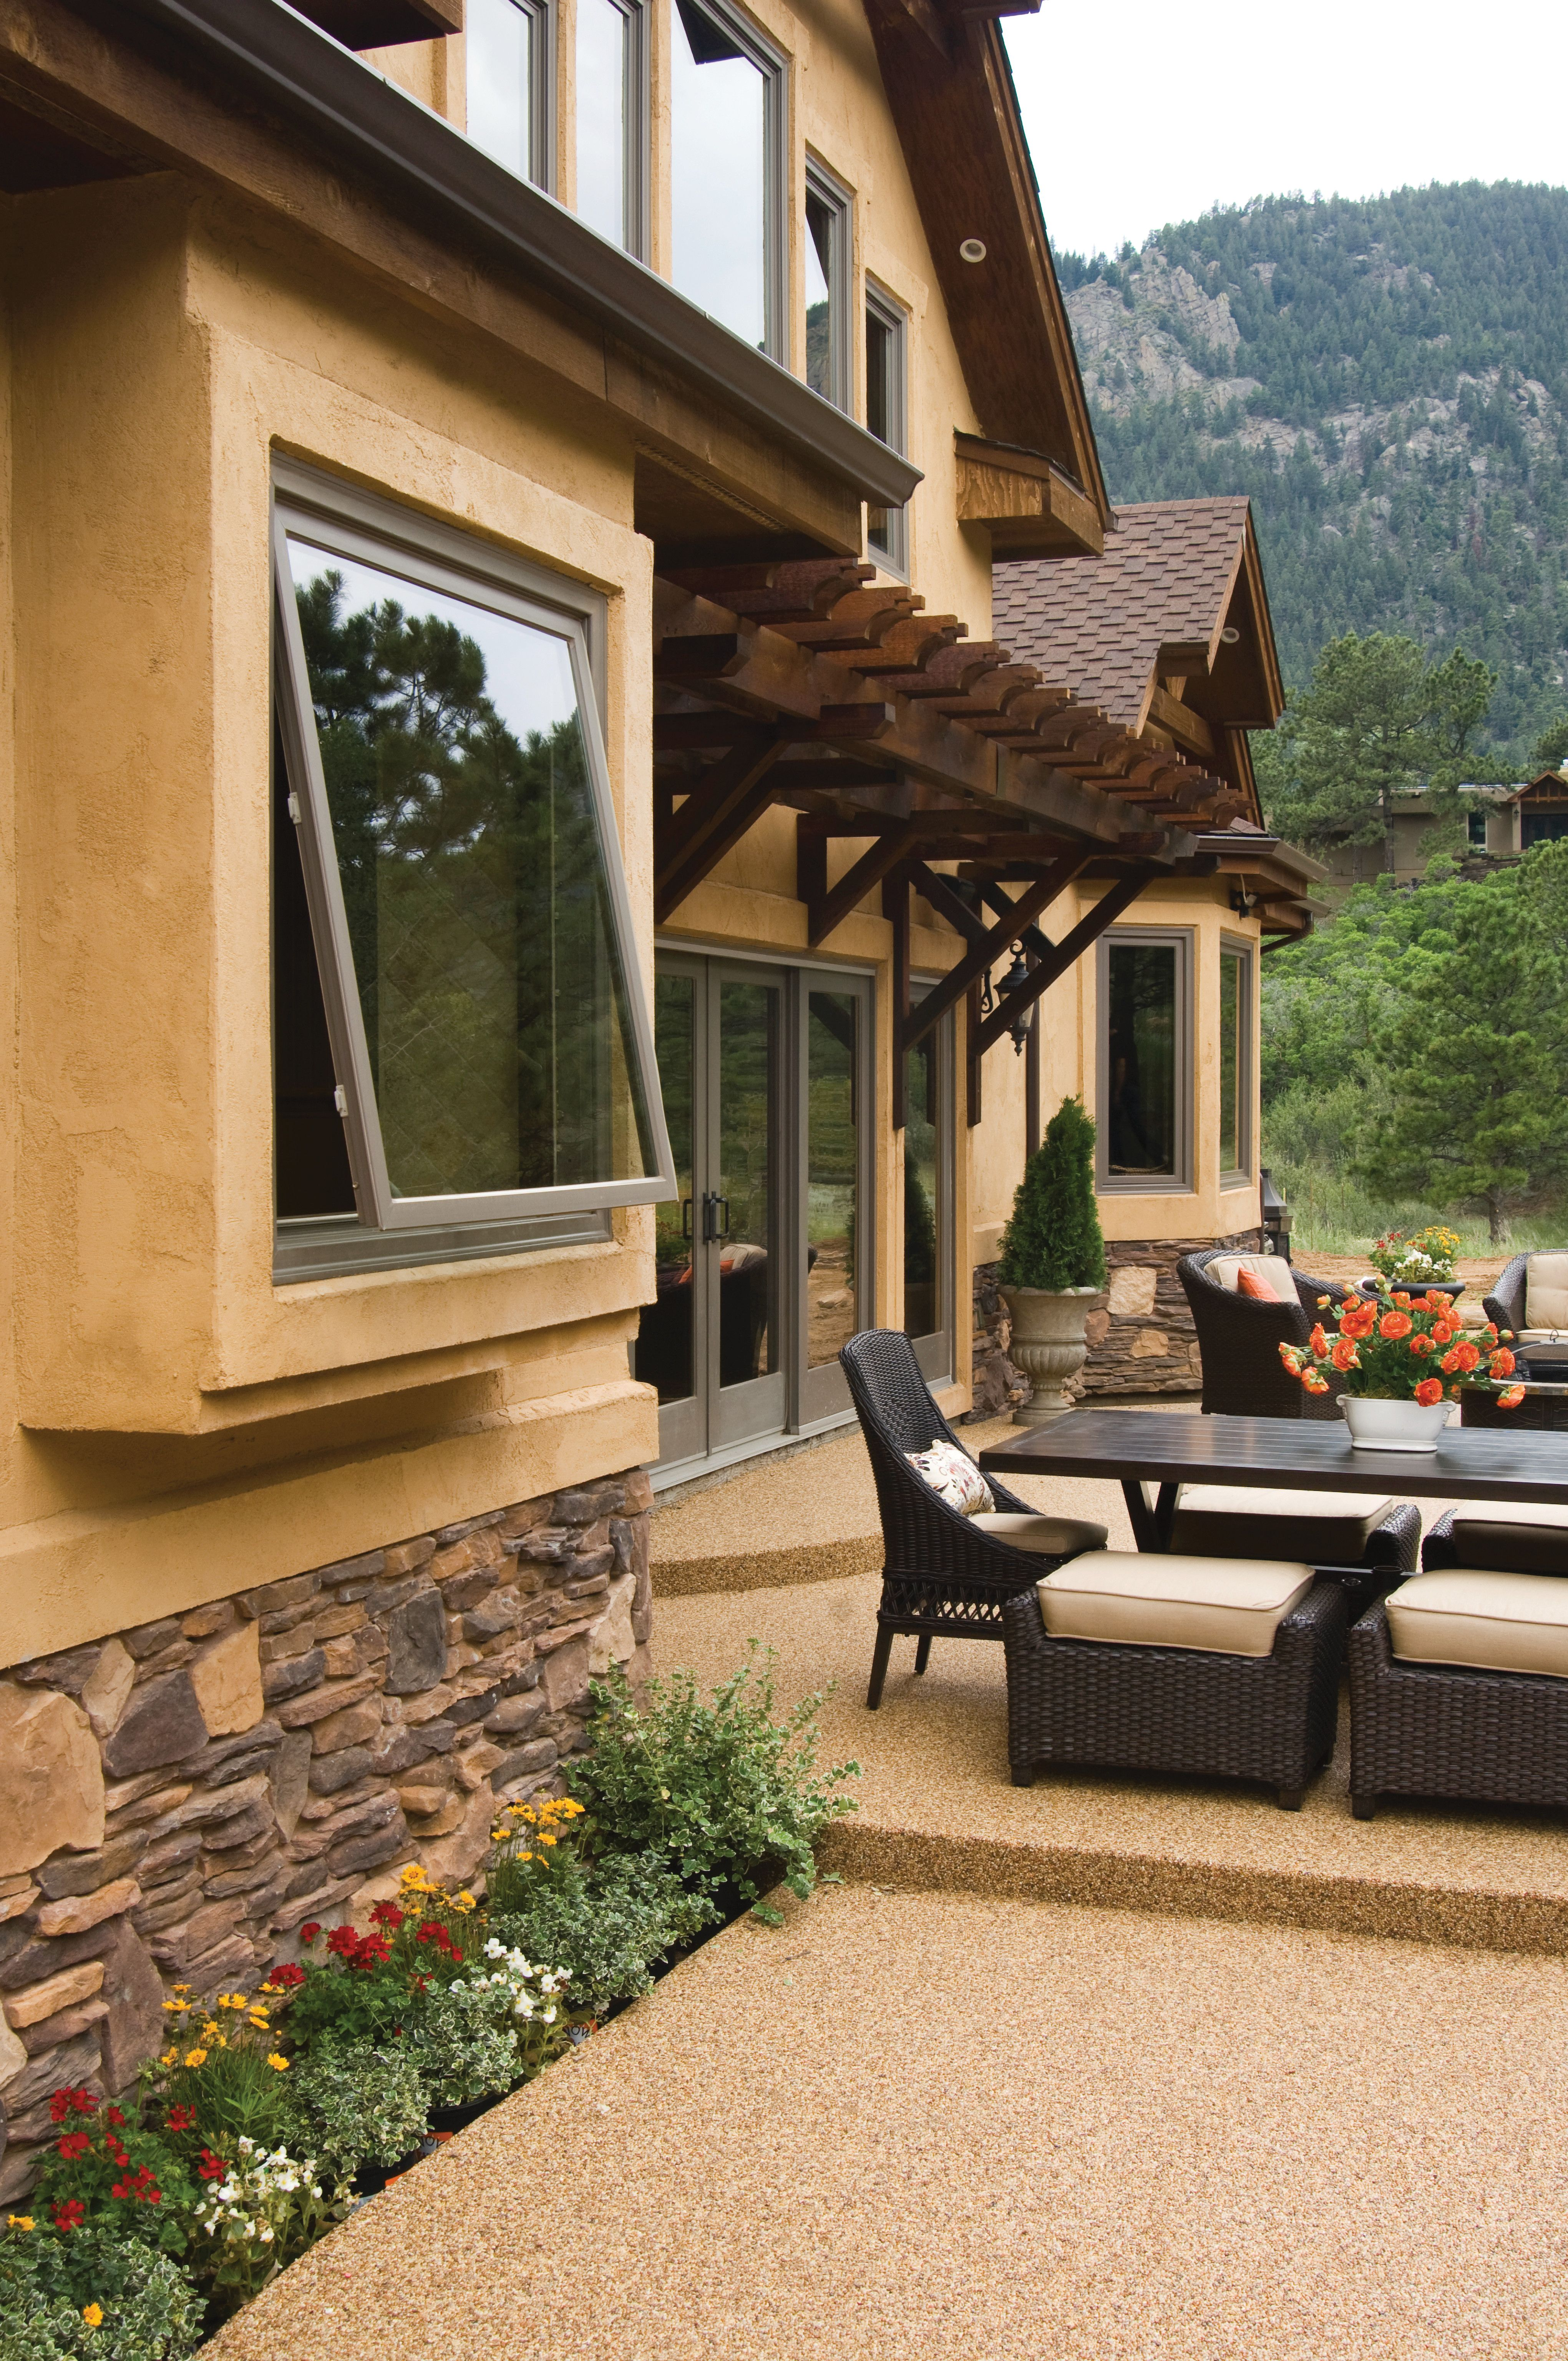 Rain Or Shine Our Awning Windows Are An Easy Way To Boost Your Ventilation If Opening Your Wind Awning Windows Awning Windows Kitchen Awning Windows Exterior